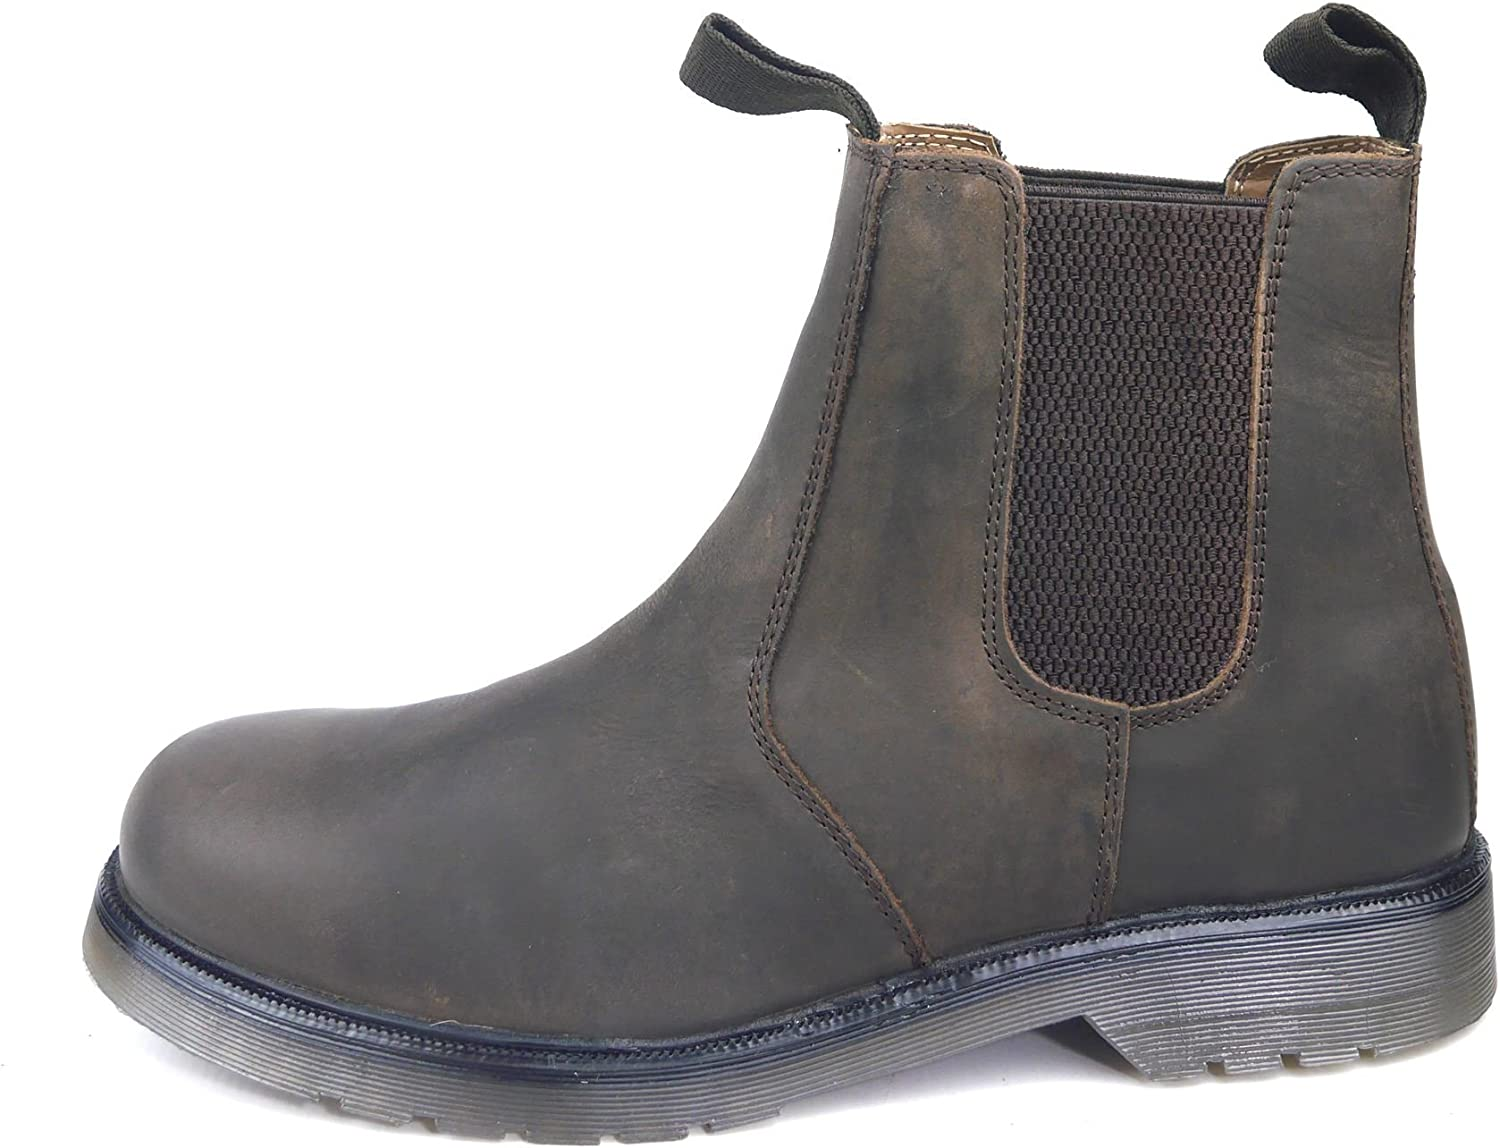 Frank James Goodwood Leather Boys Dealer Chelsea Airsole Boots Chocolate Brown